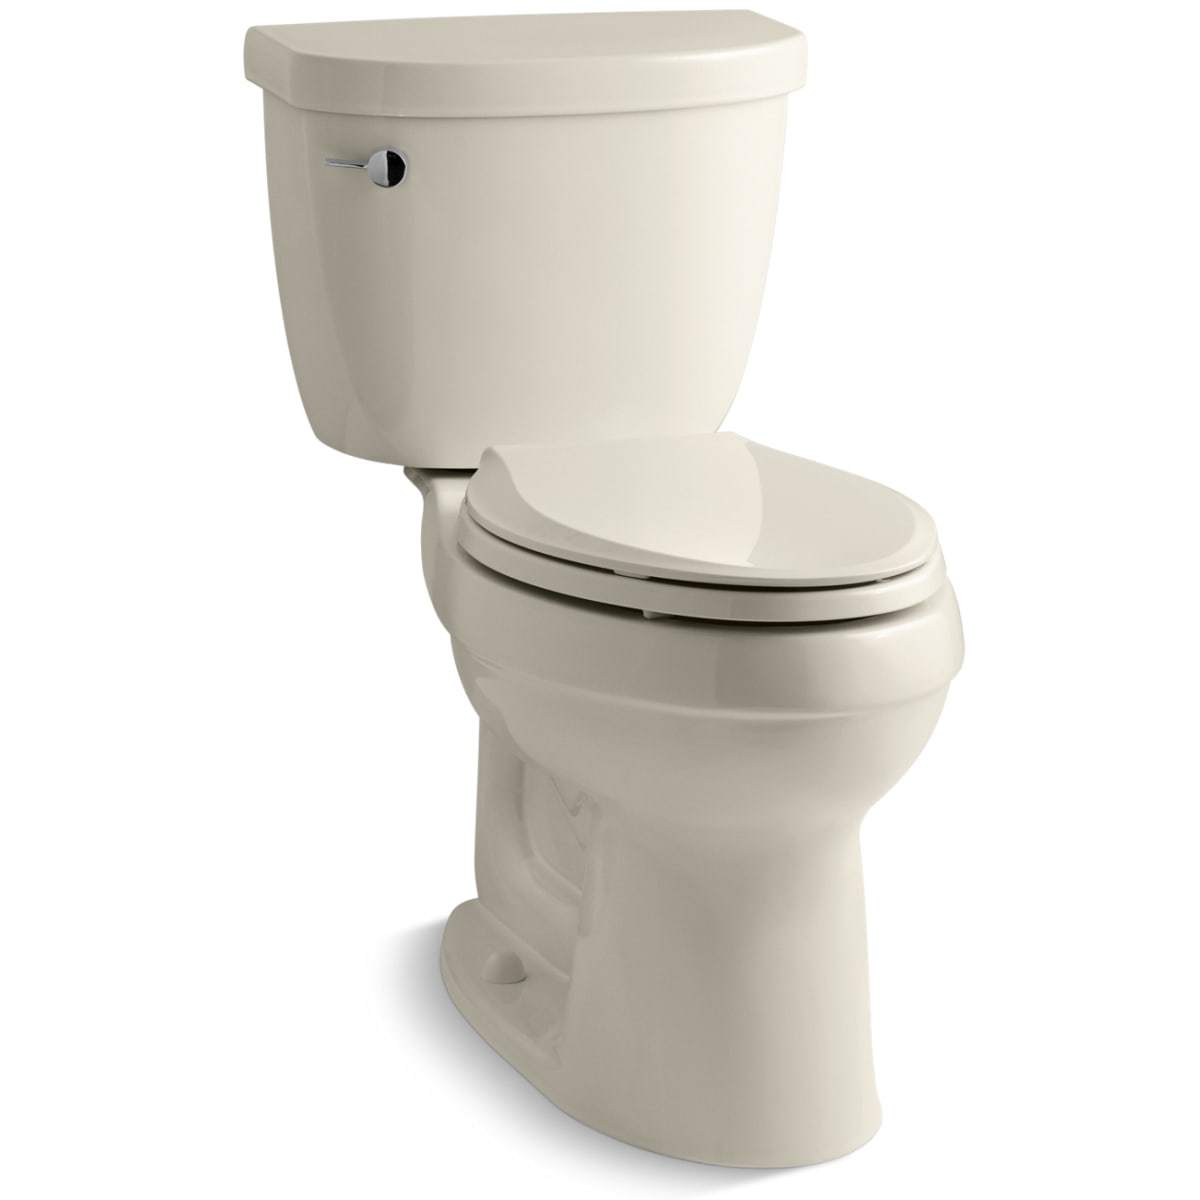 Kohler K 3589 Ny Dune Cimarron 1 6 Gpf Two Piece Elongated Comfort Height Toilet With Aquapiston Technology Seat Not Included Faucetdirect